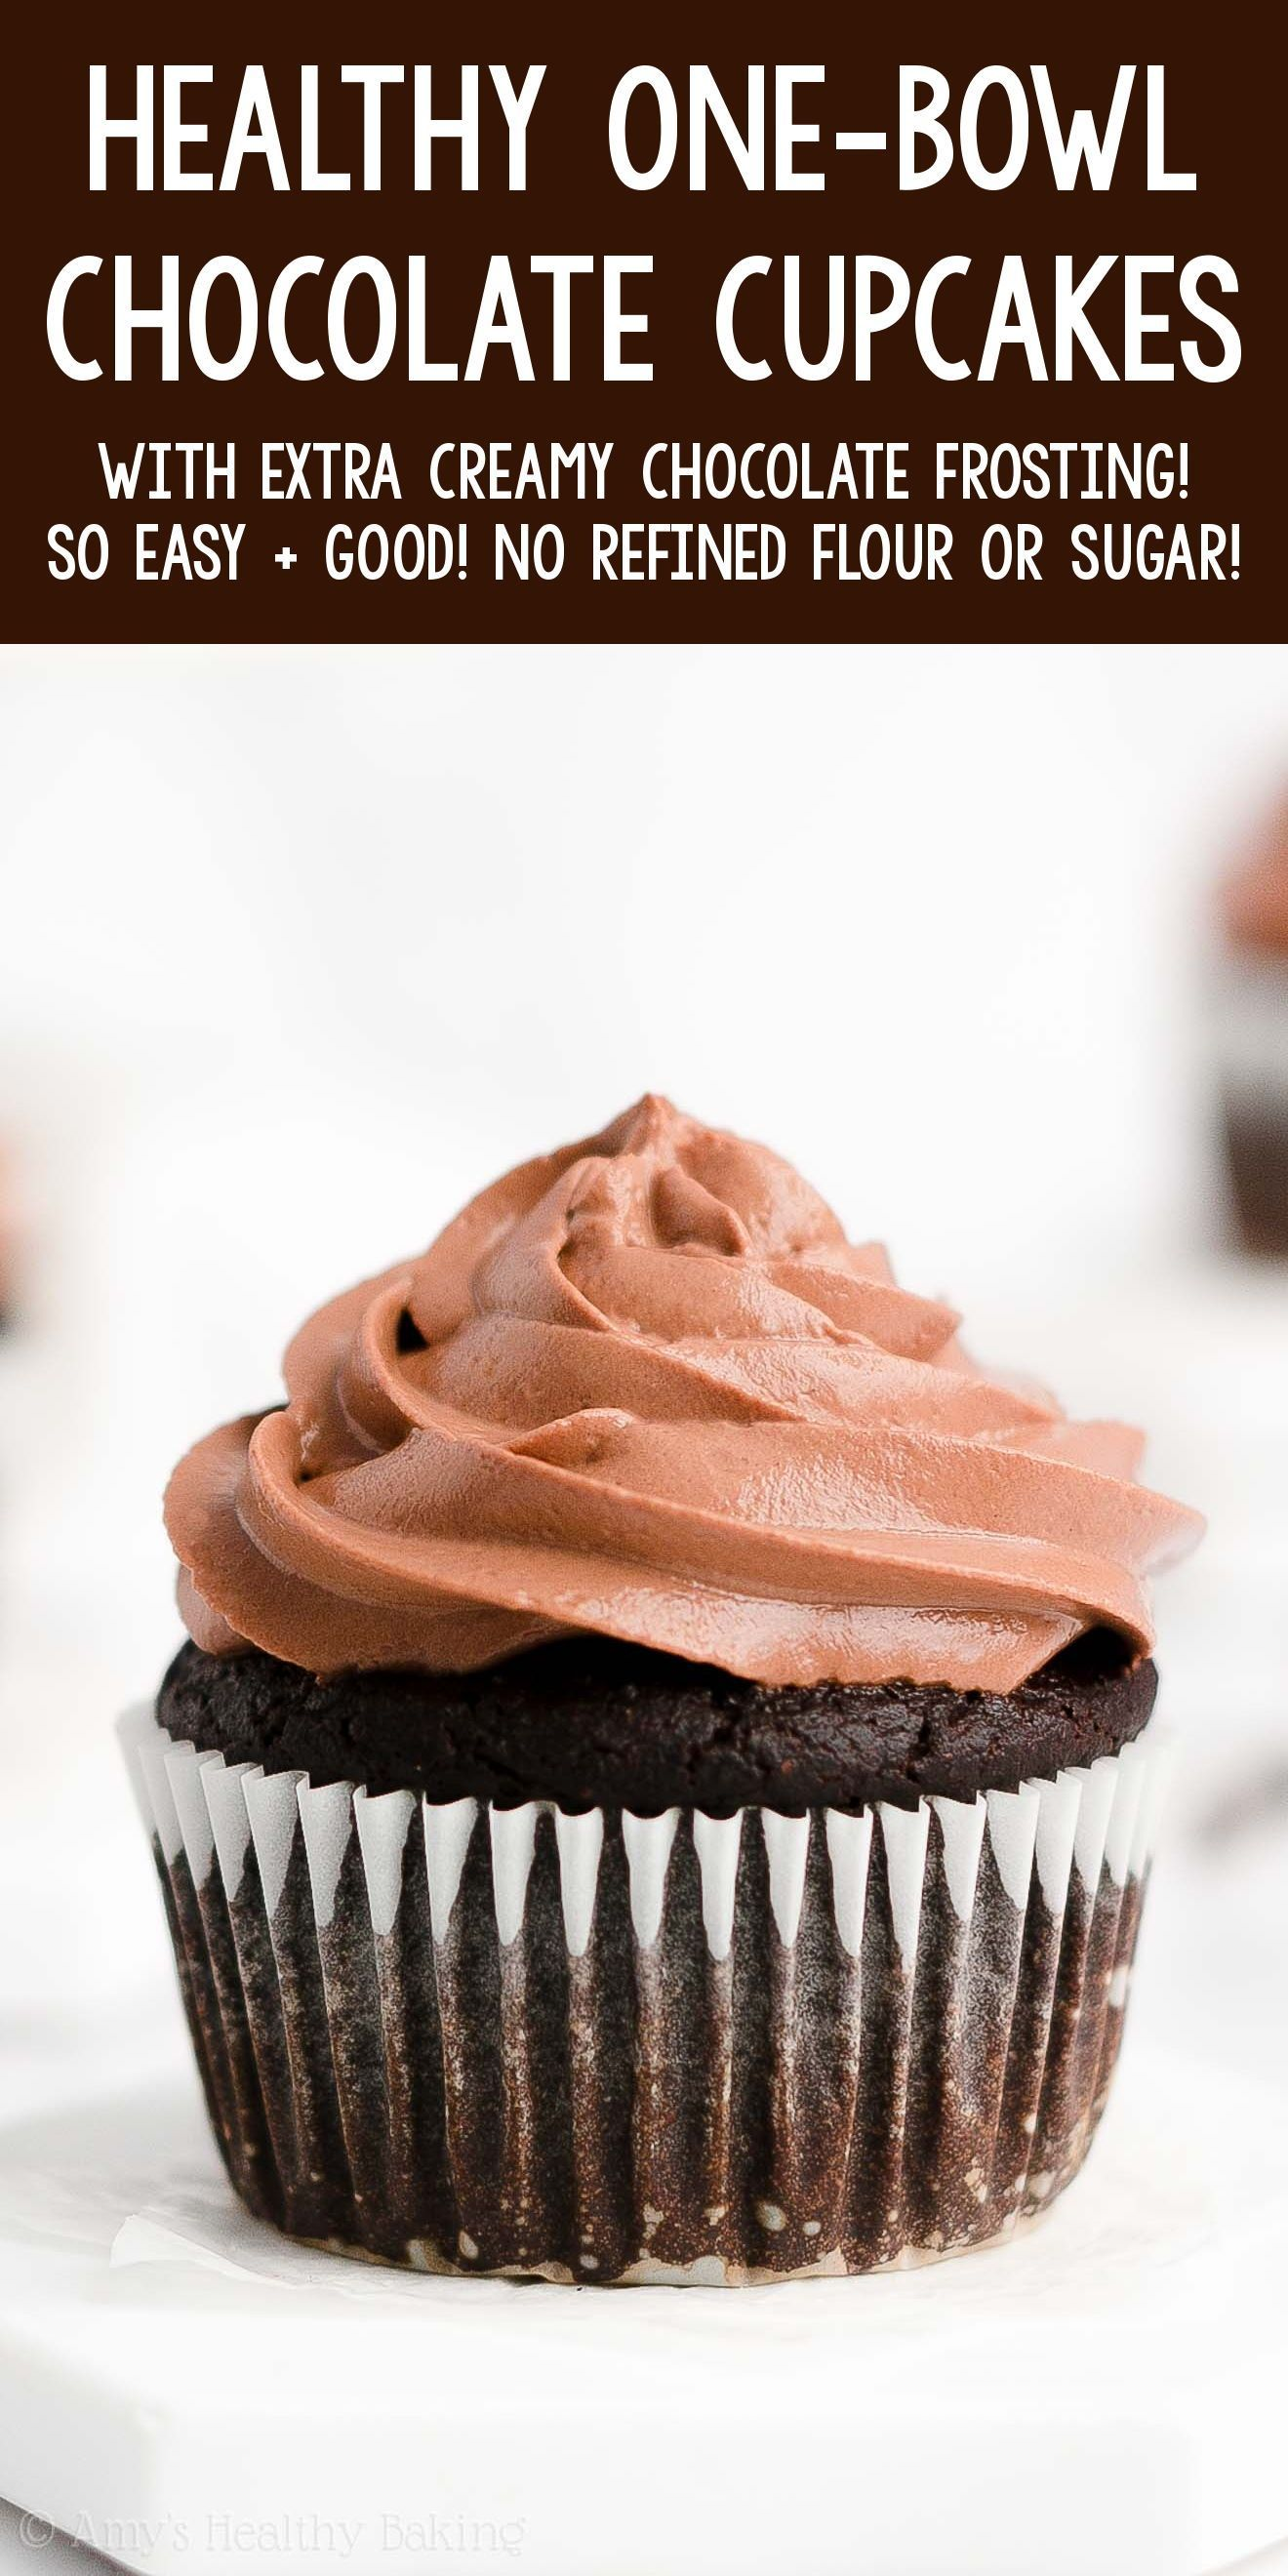 The Ultimate Healthy Chocolate Cupcakes Easy 1 Bowl Recipe In 2020 Healthy Chocolate Cupcakes Chocolate Cupcakes Easy Easy Chocolate Cupcake Recipe